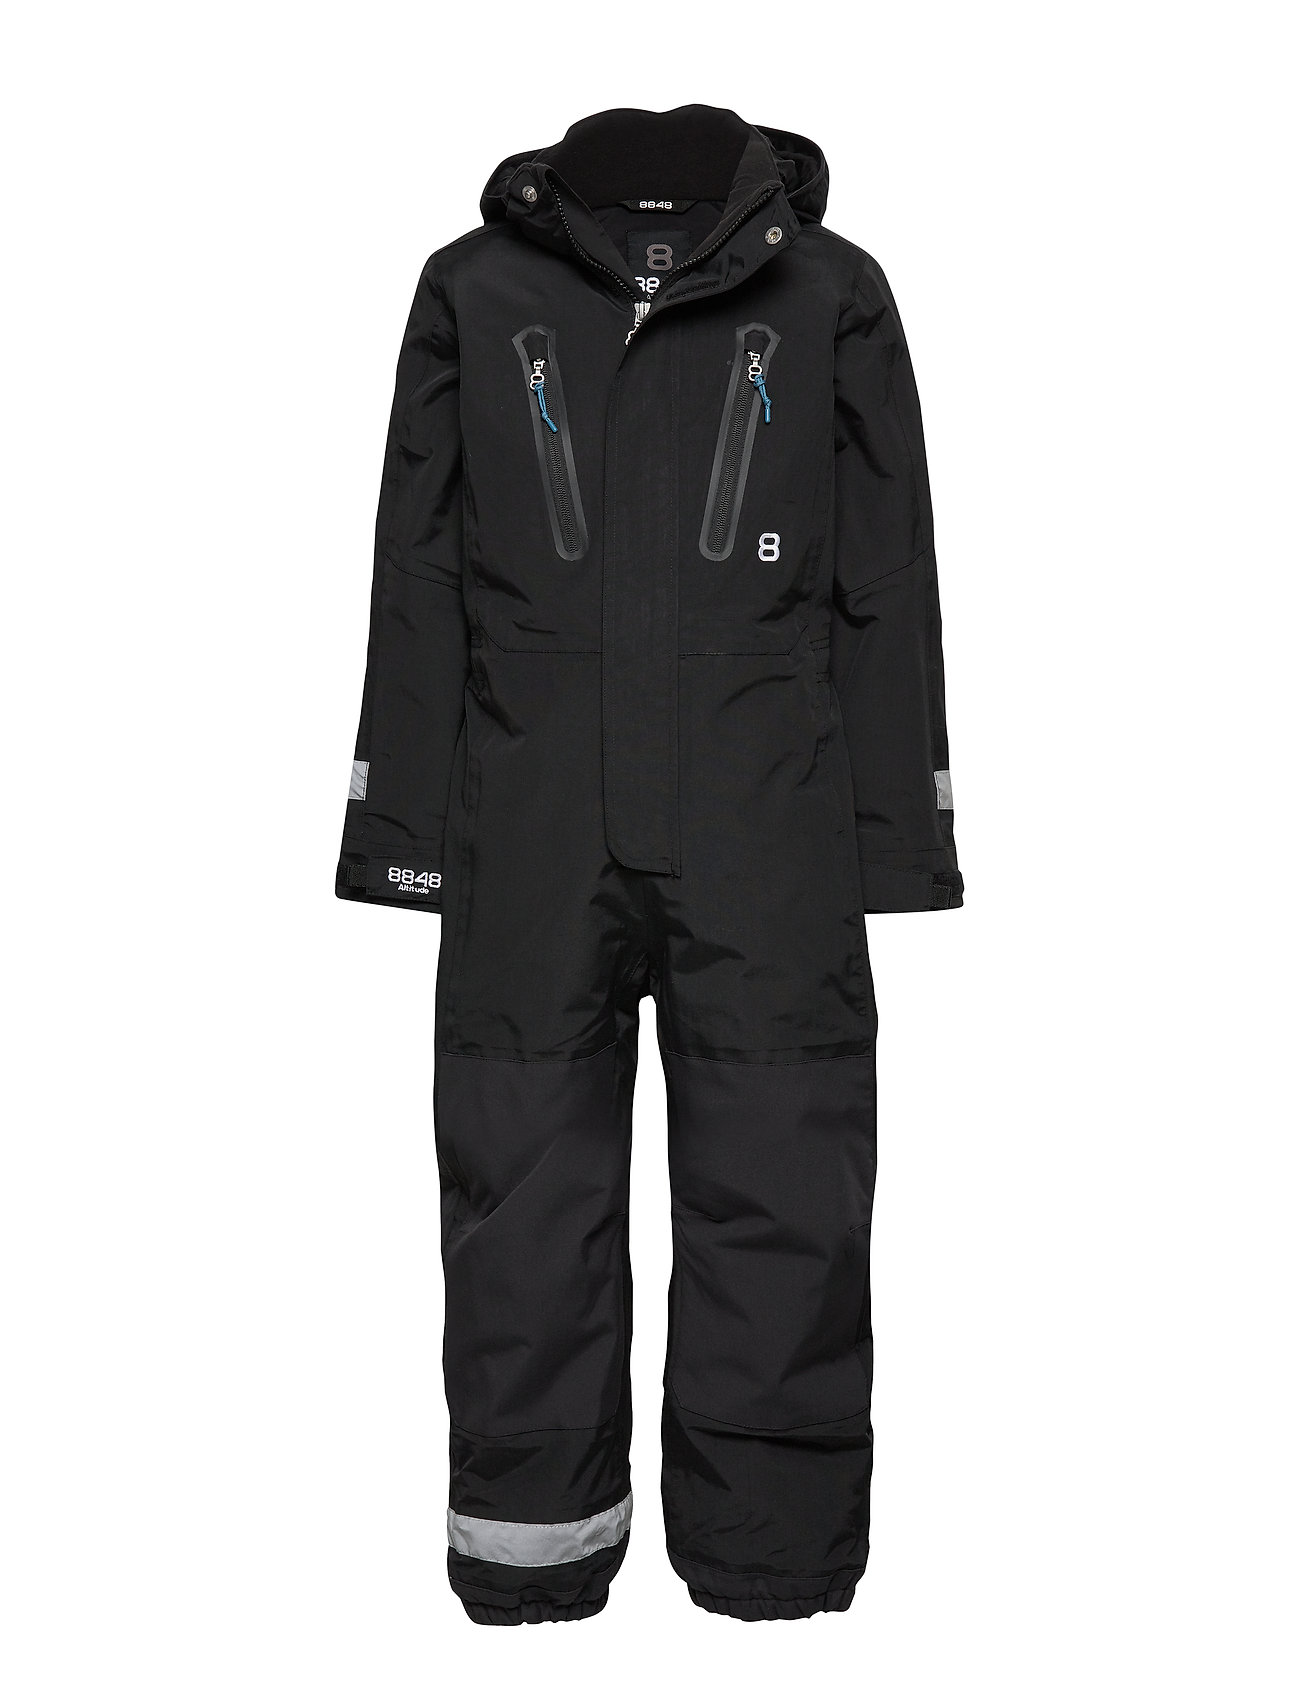 8848 Altitude Karel Minior suit - BLACK